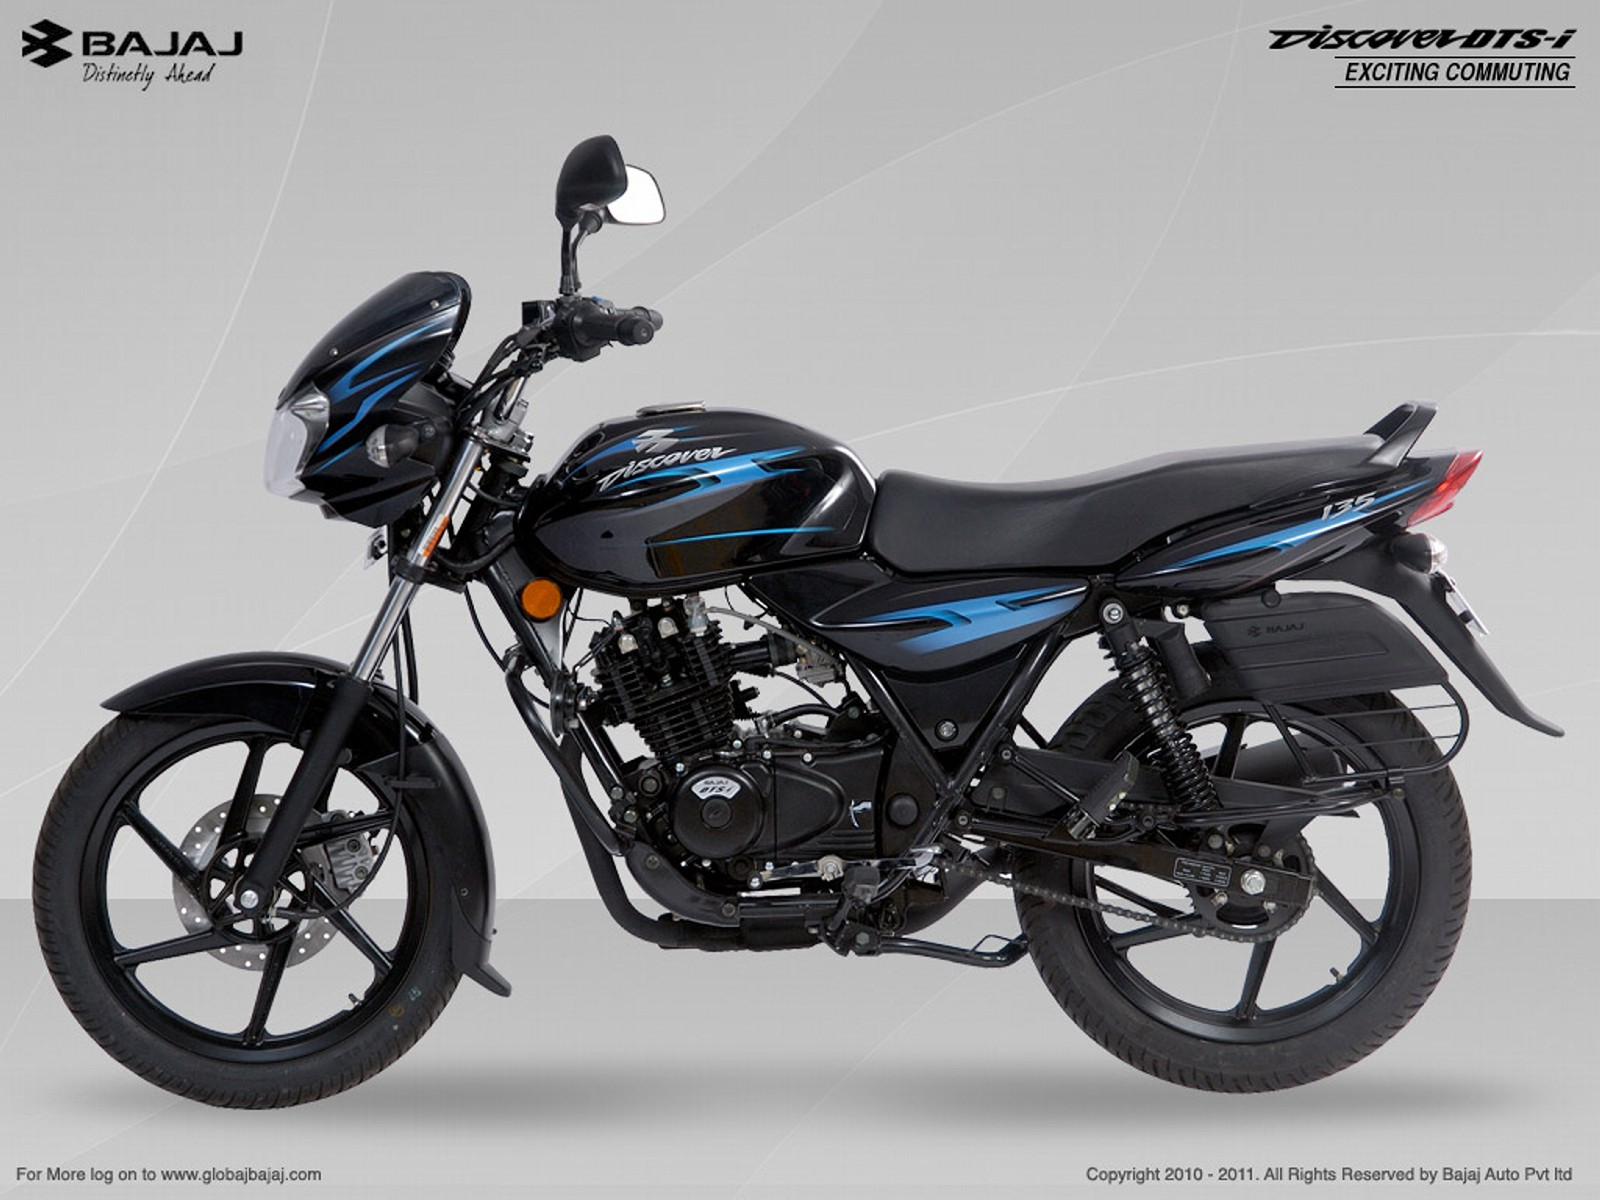 Panhead   Trans as well Scheme Moto Dnepr moreover Maxresdefault furthermore Bajaj Discover Dts Si likewise Peugeot Scooter. on victory motorcycle wiring diagram